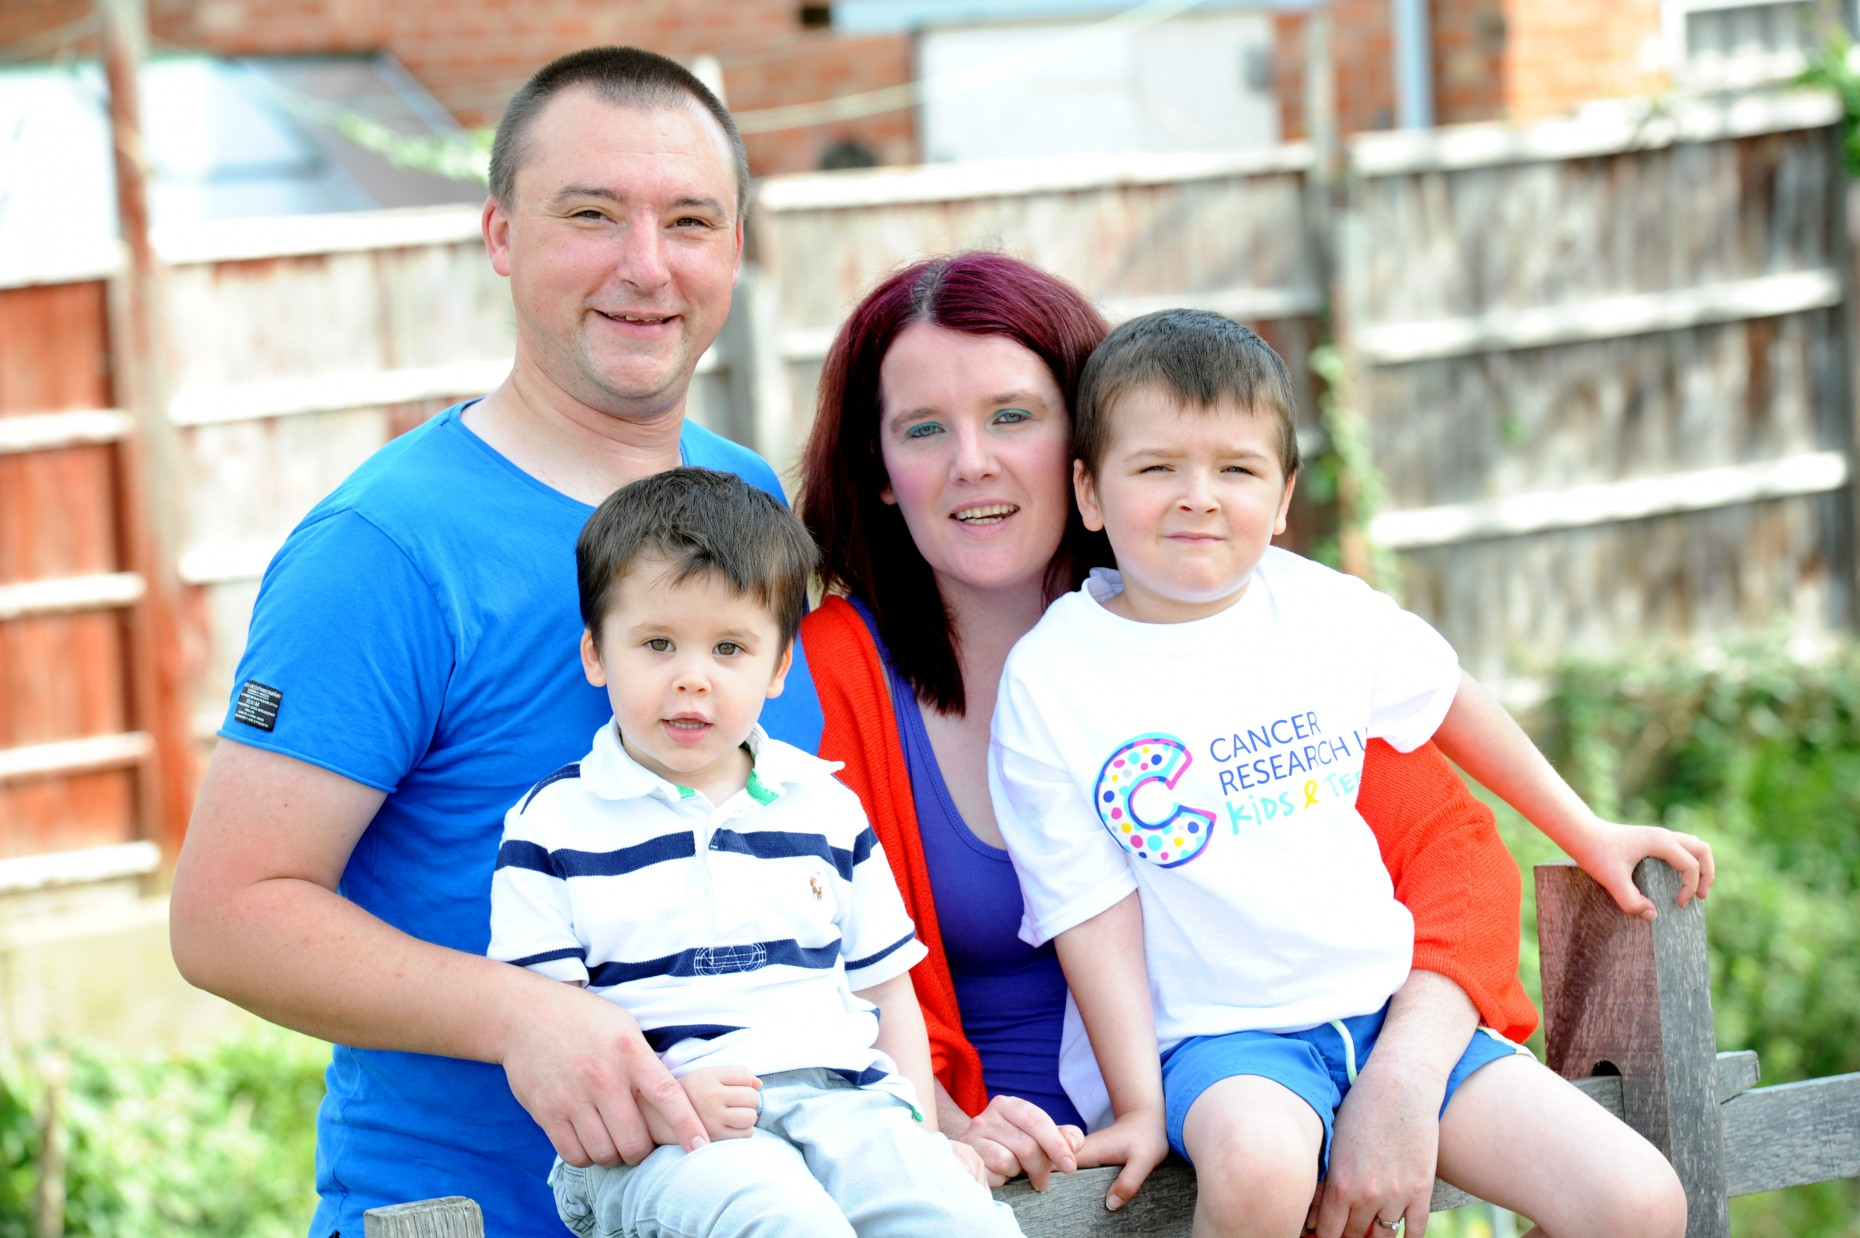 Liam and his family from Lincoln.